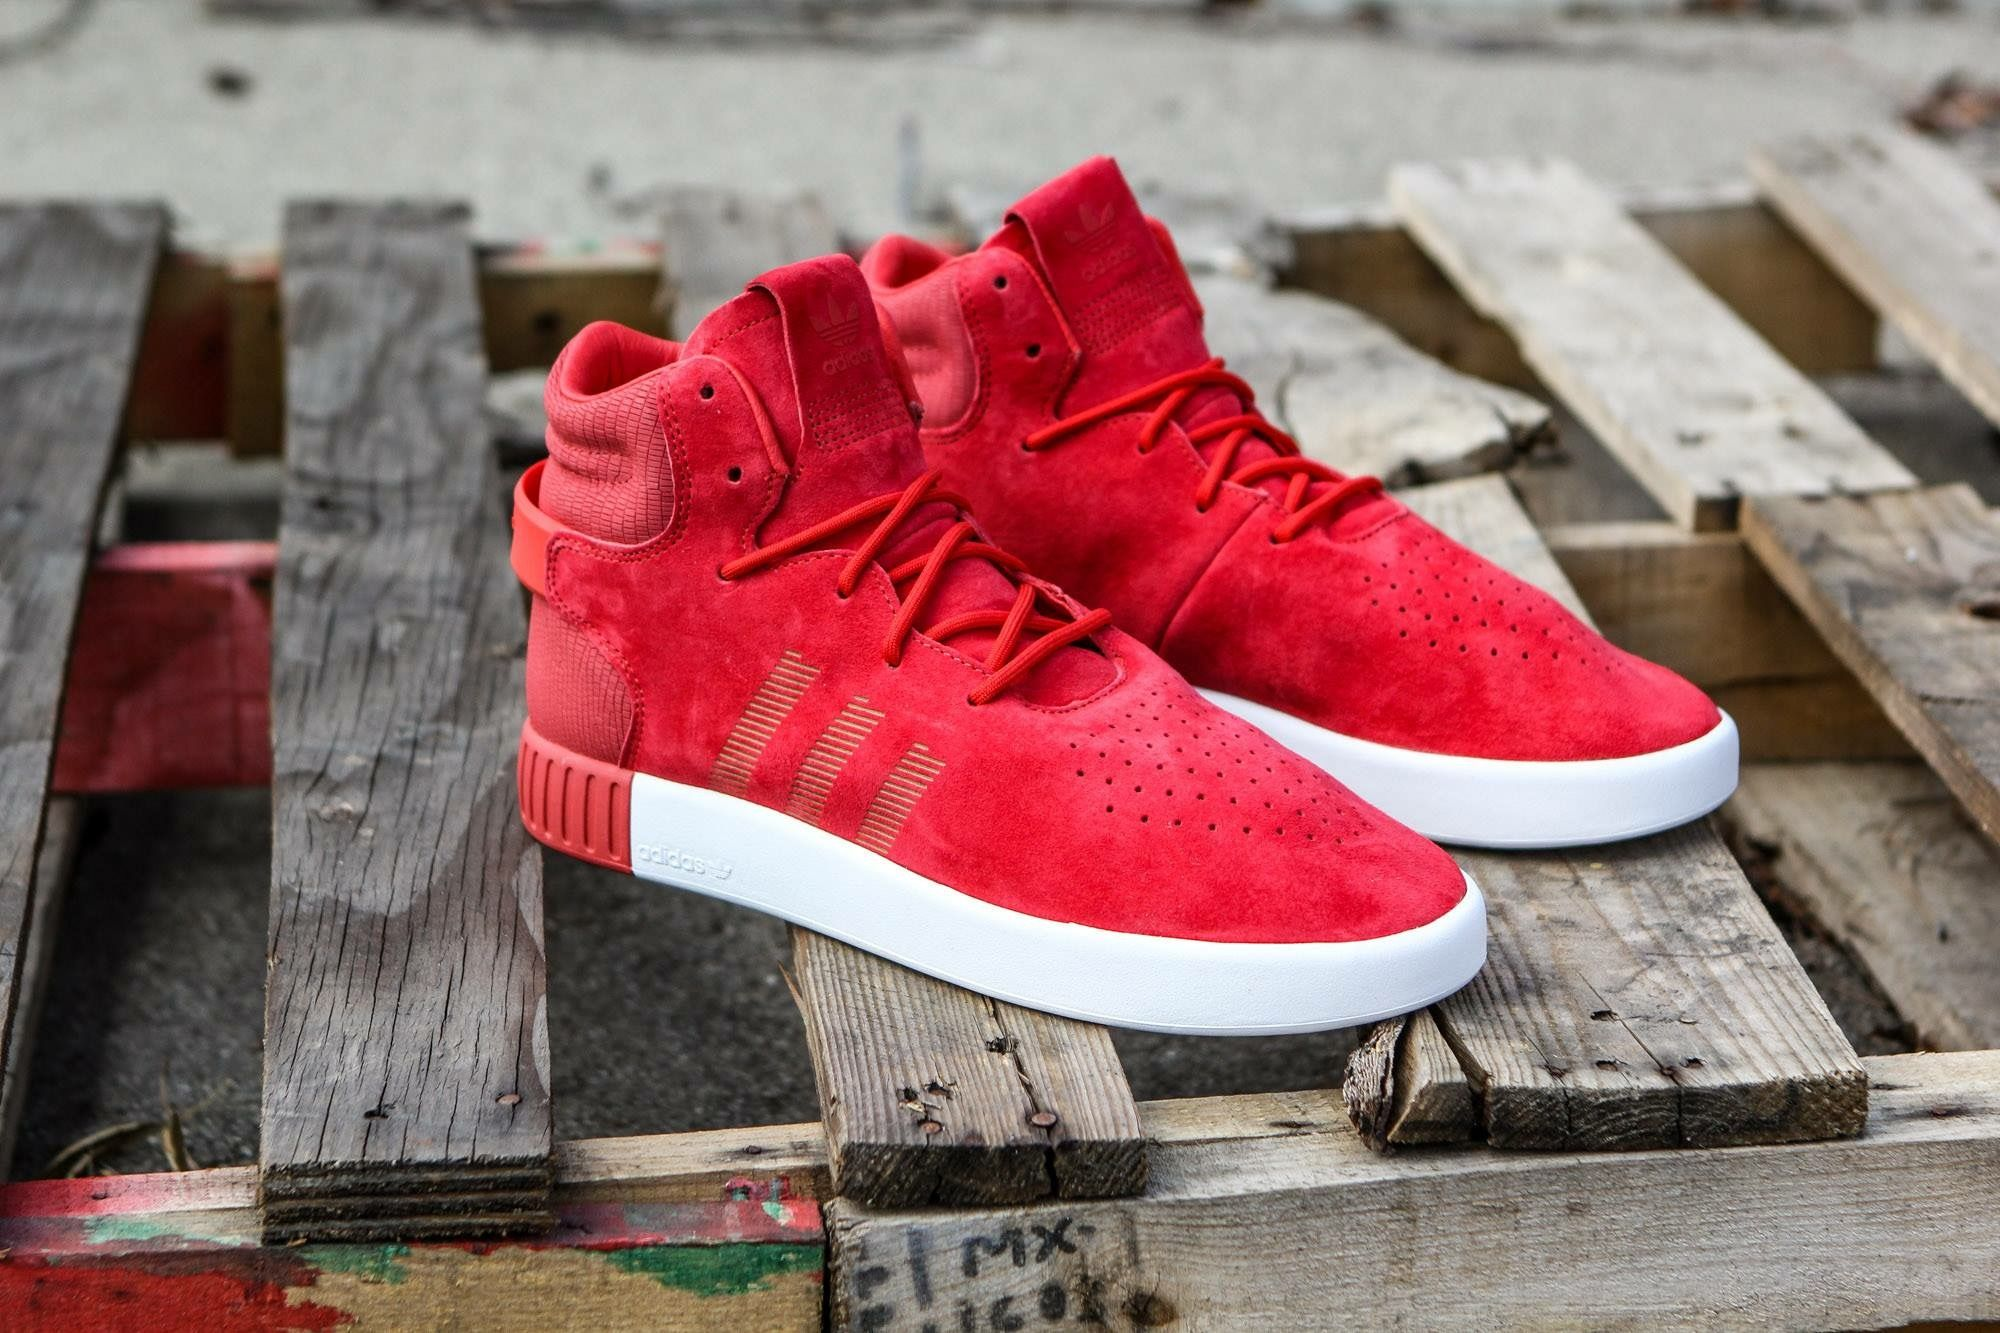 timeless design b695f 35078 adidas Originals Tubular Invader: Red | Adidas in 2019 ...